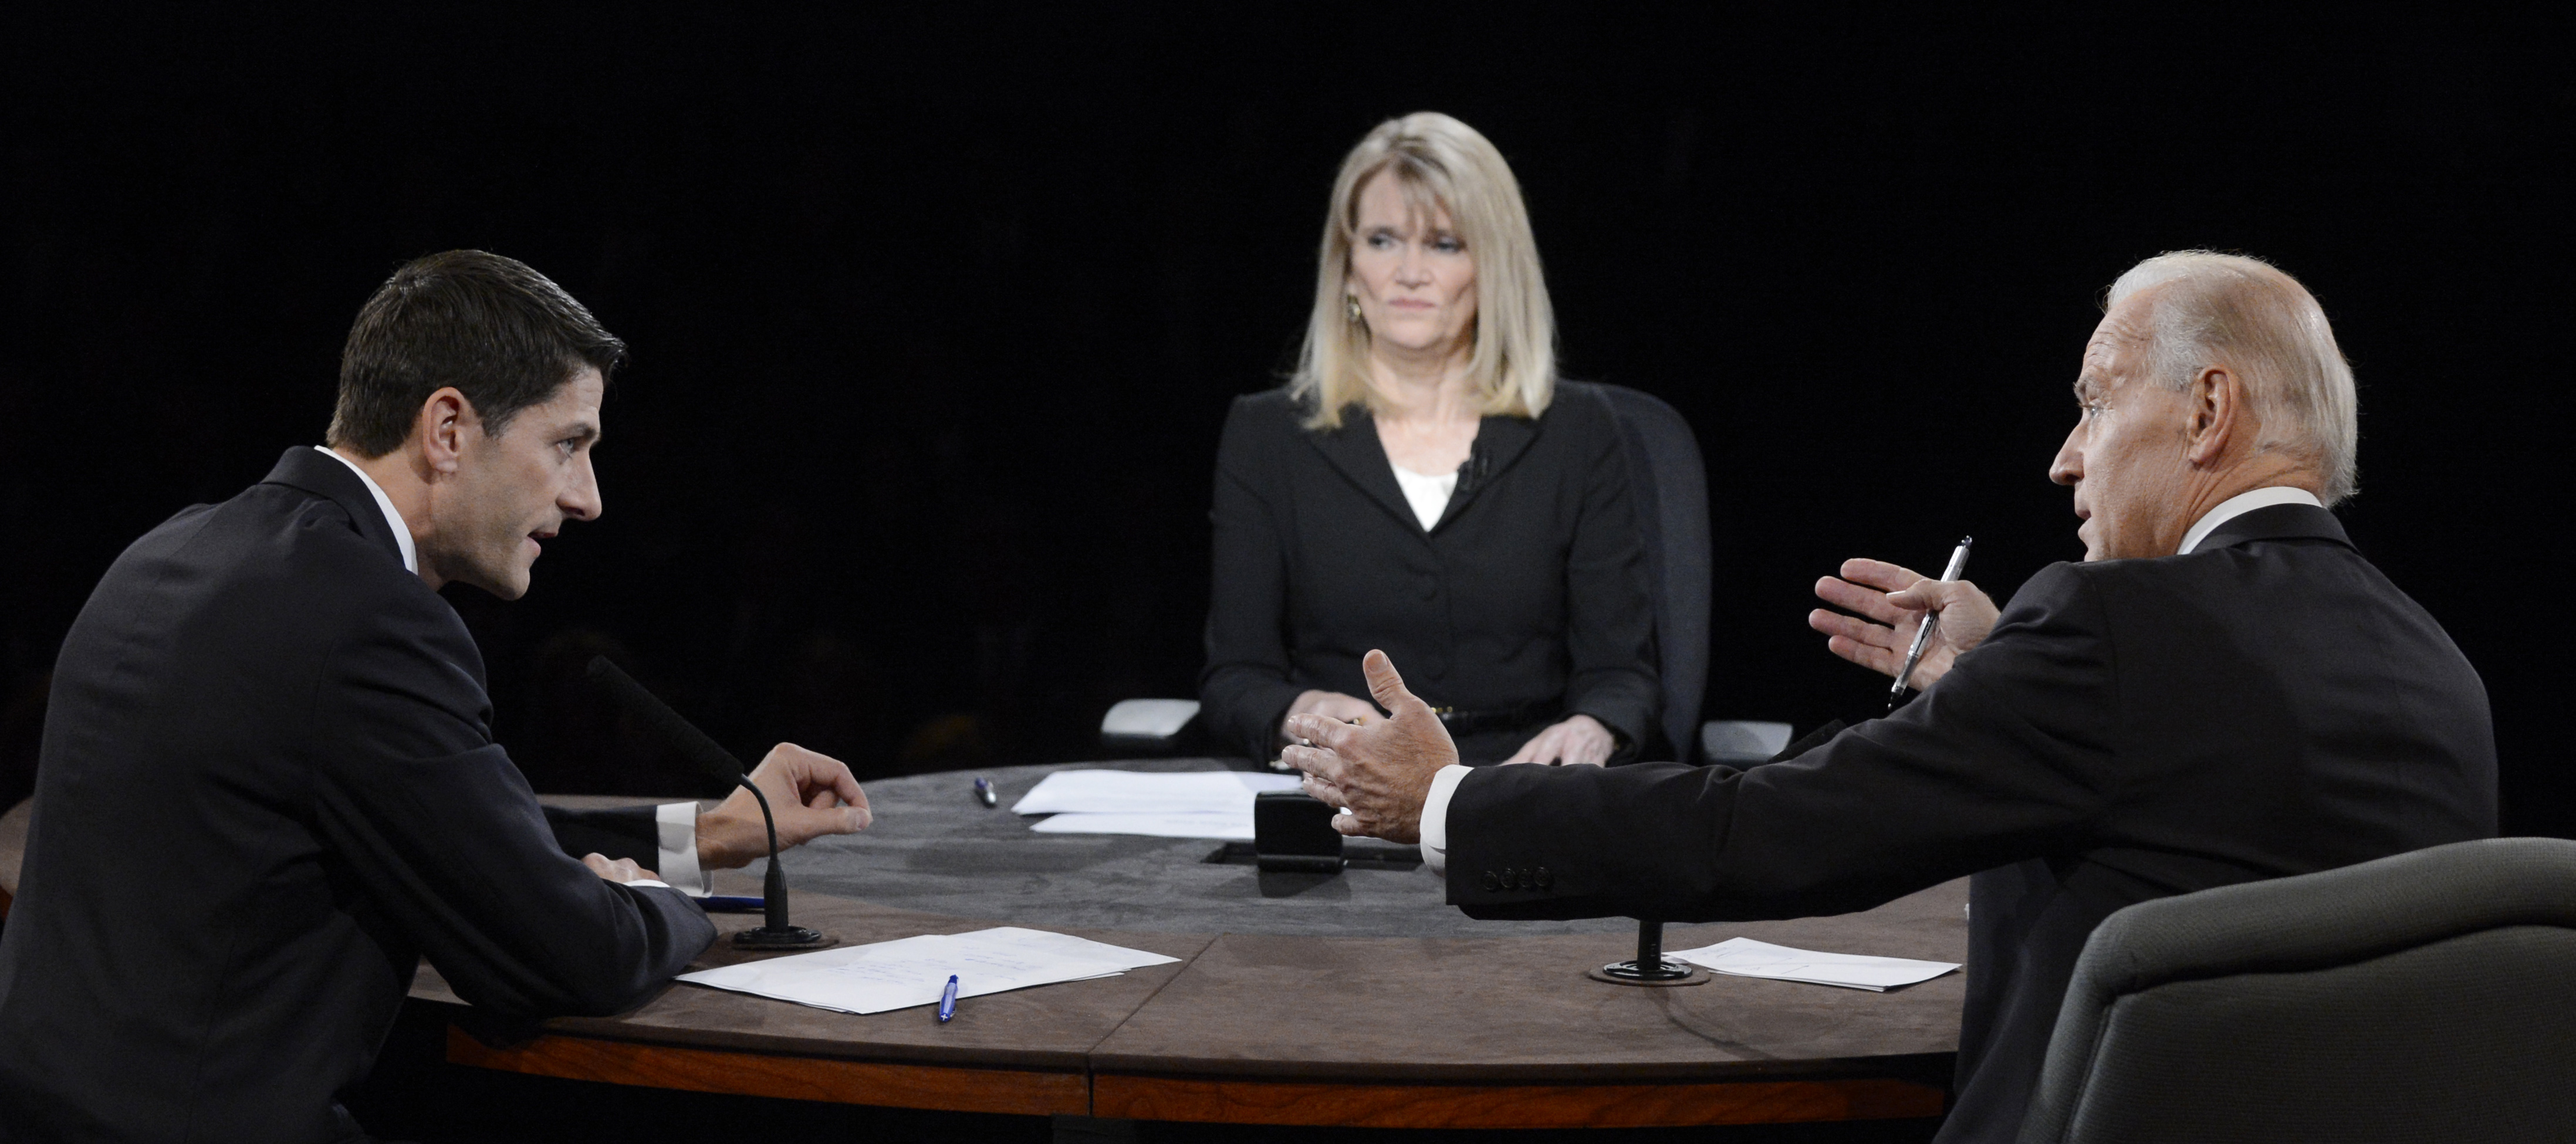 (AP Photo/Pool-Michael Reynolds) Martha Raddatz moderates the vice presidential debate.